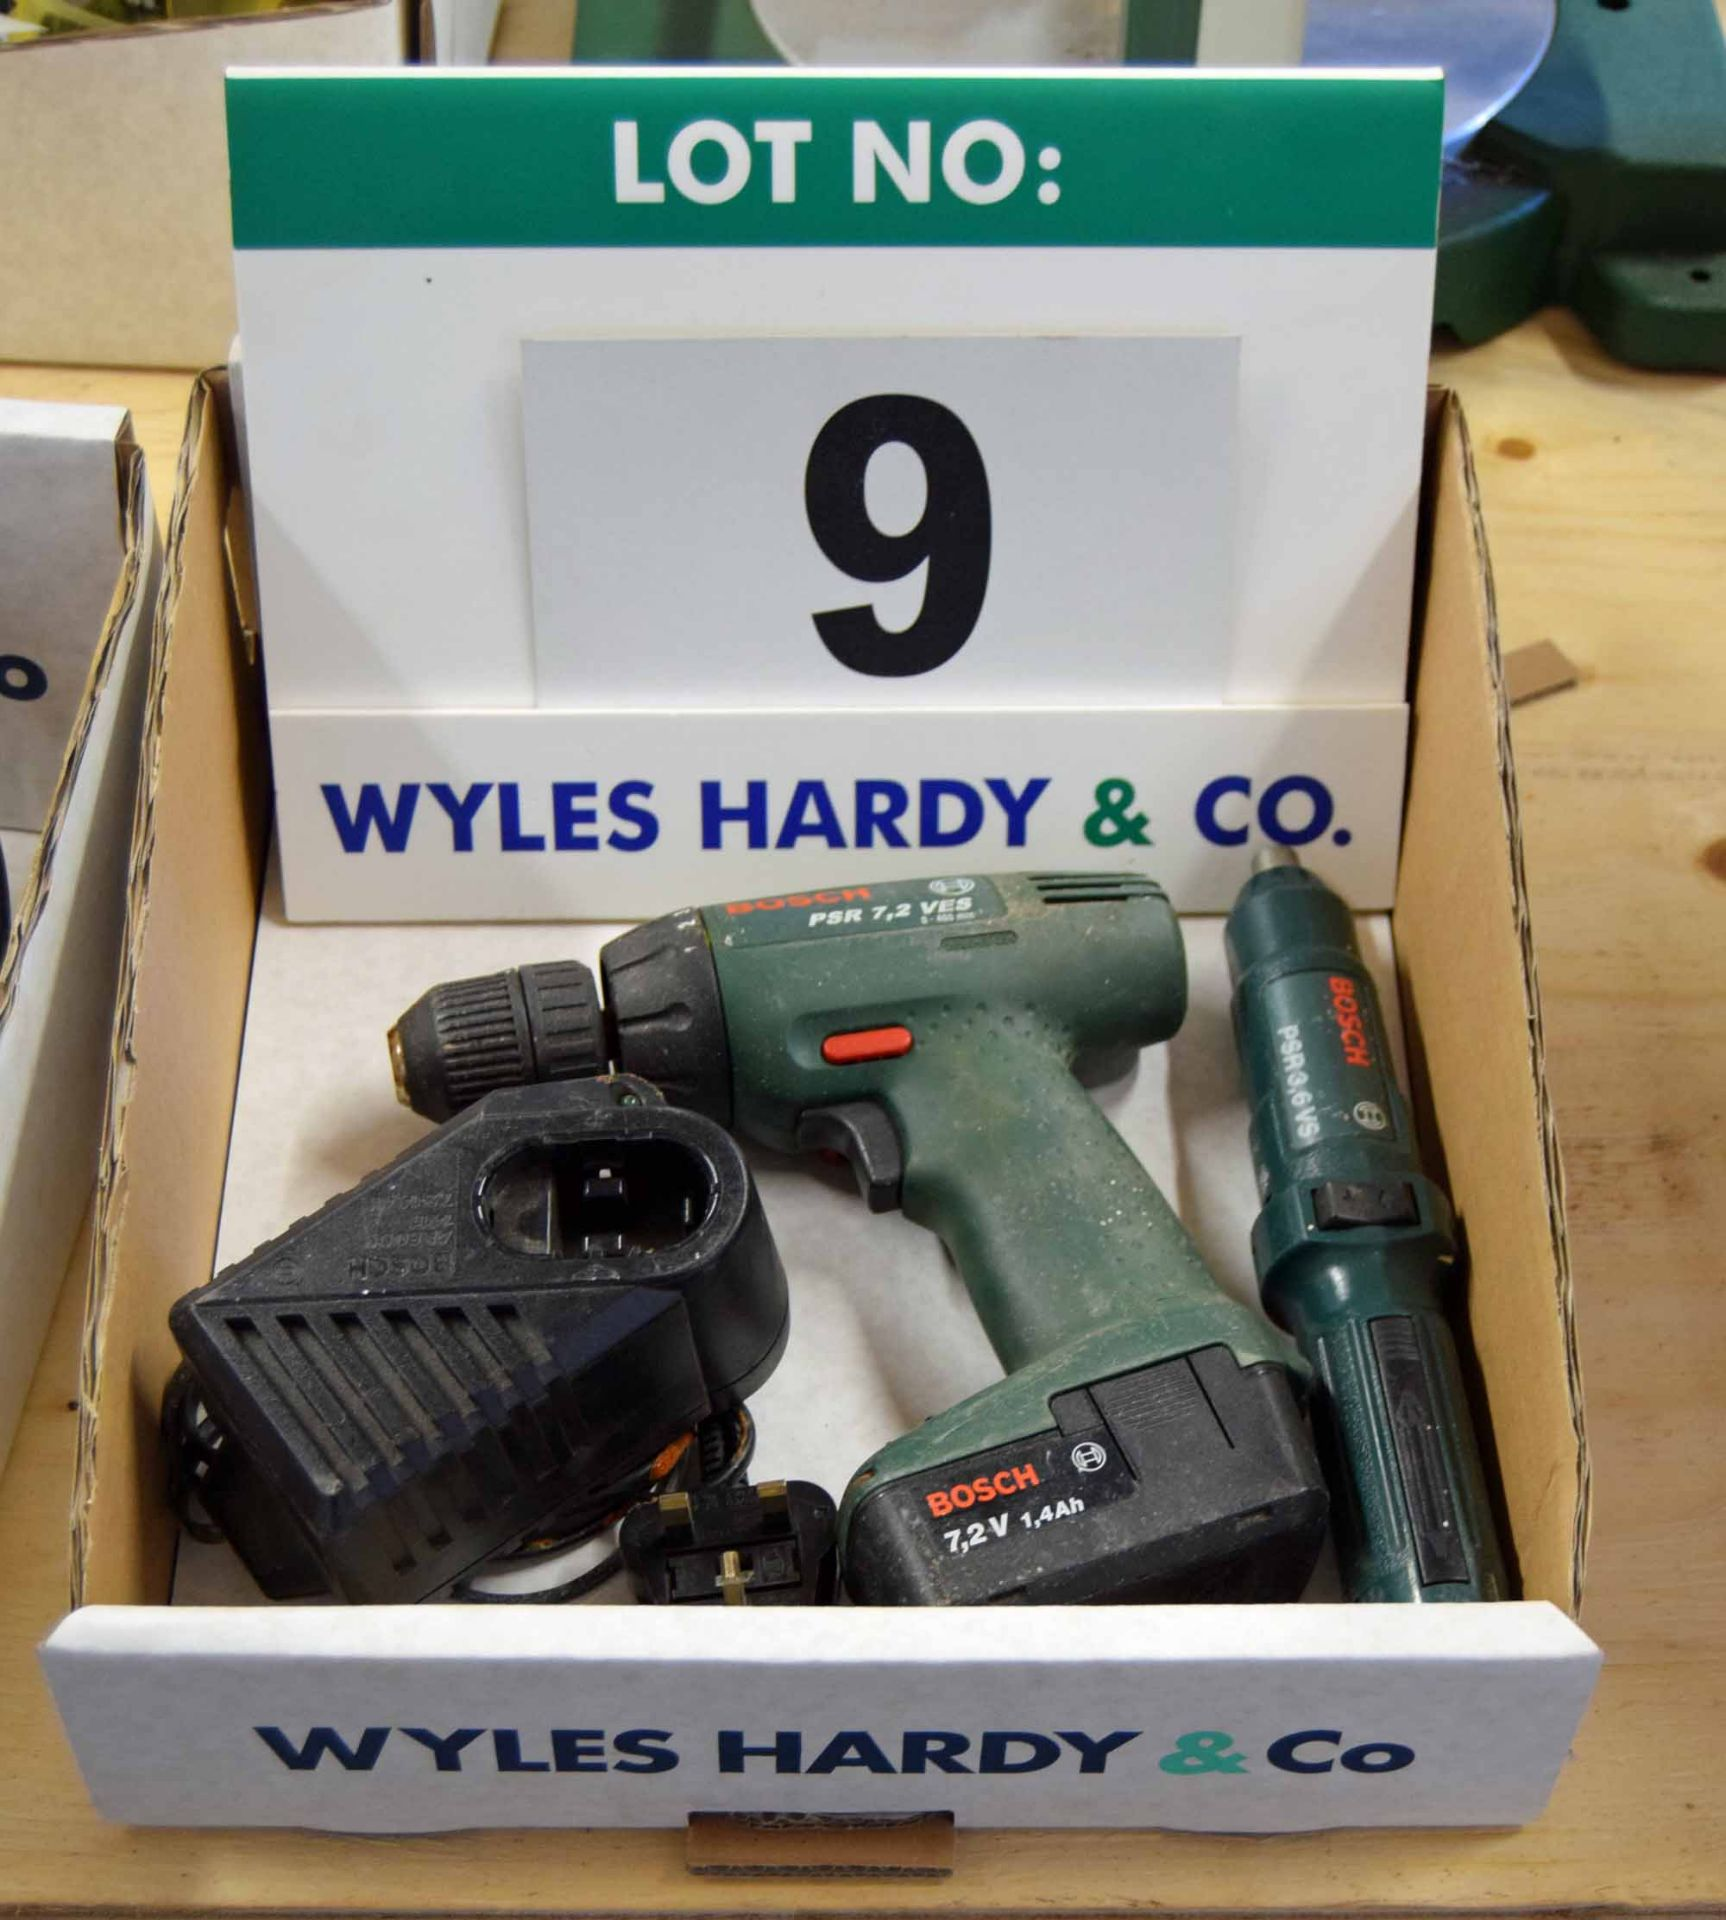 Lot 9 - A BOSCH PSR 7,2 VES 18V Cordless Rechargeable Drill/Driver with Variable Speed, Variable Torque,